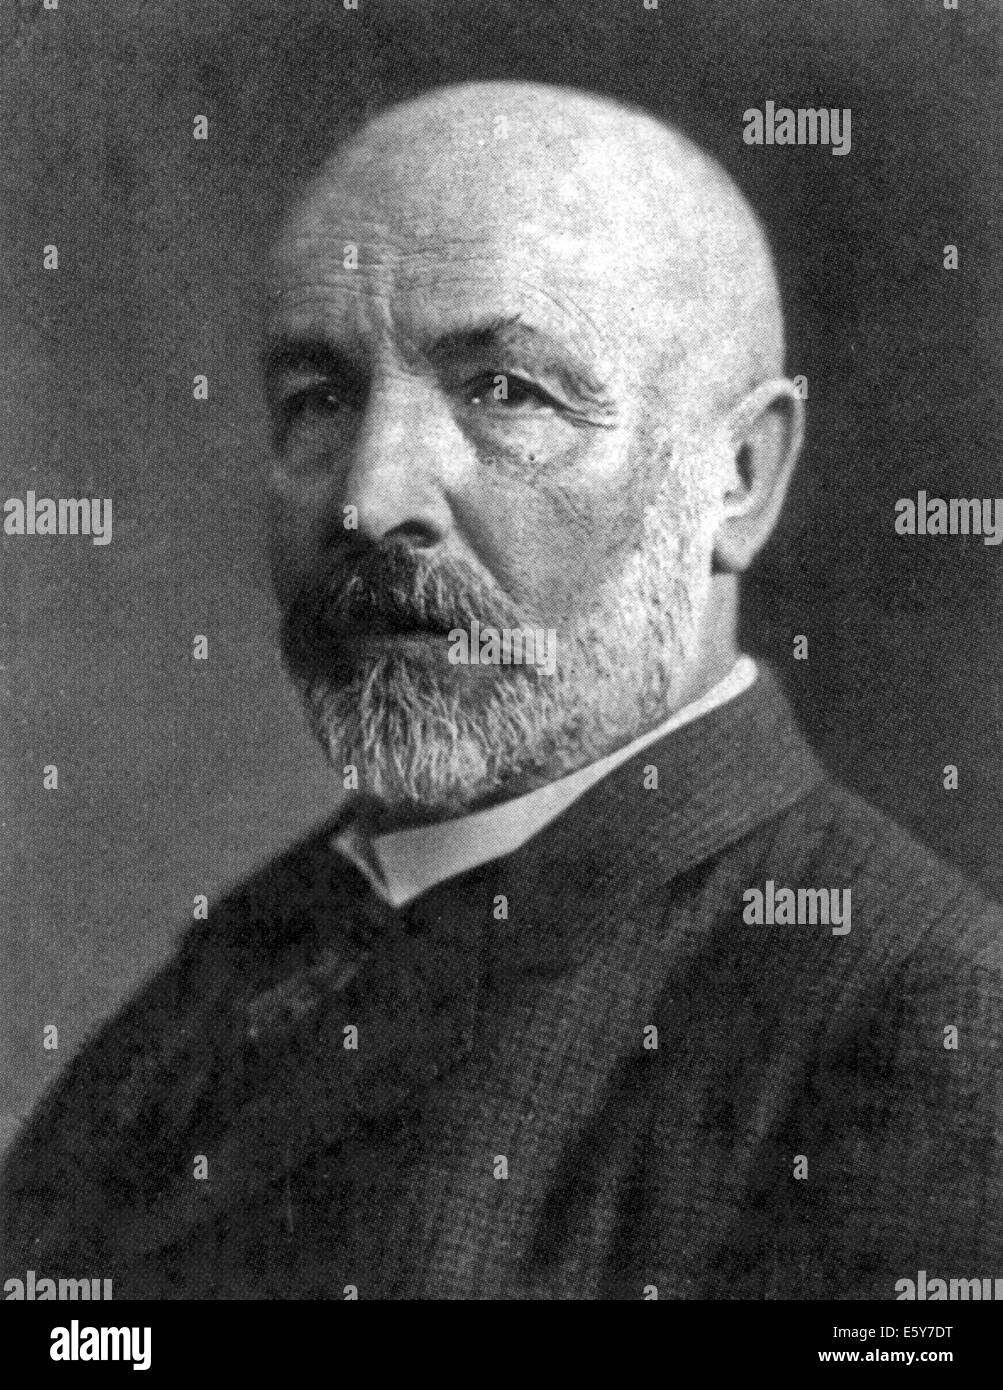 GEORG CANTOR (1845-1918) German mathematician who invented set theory - Stock Image